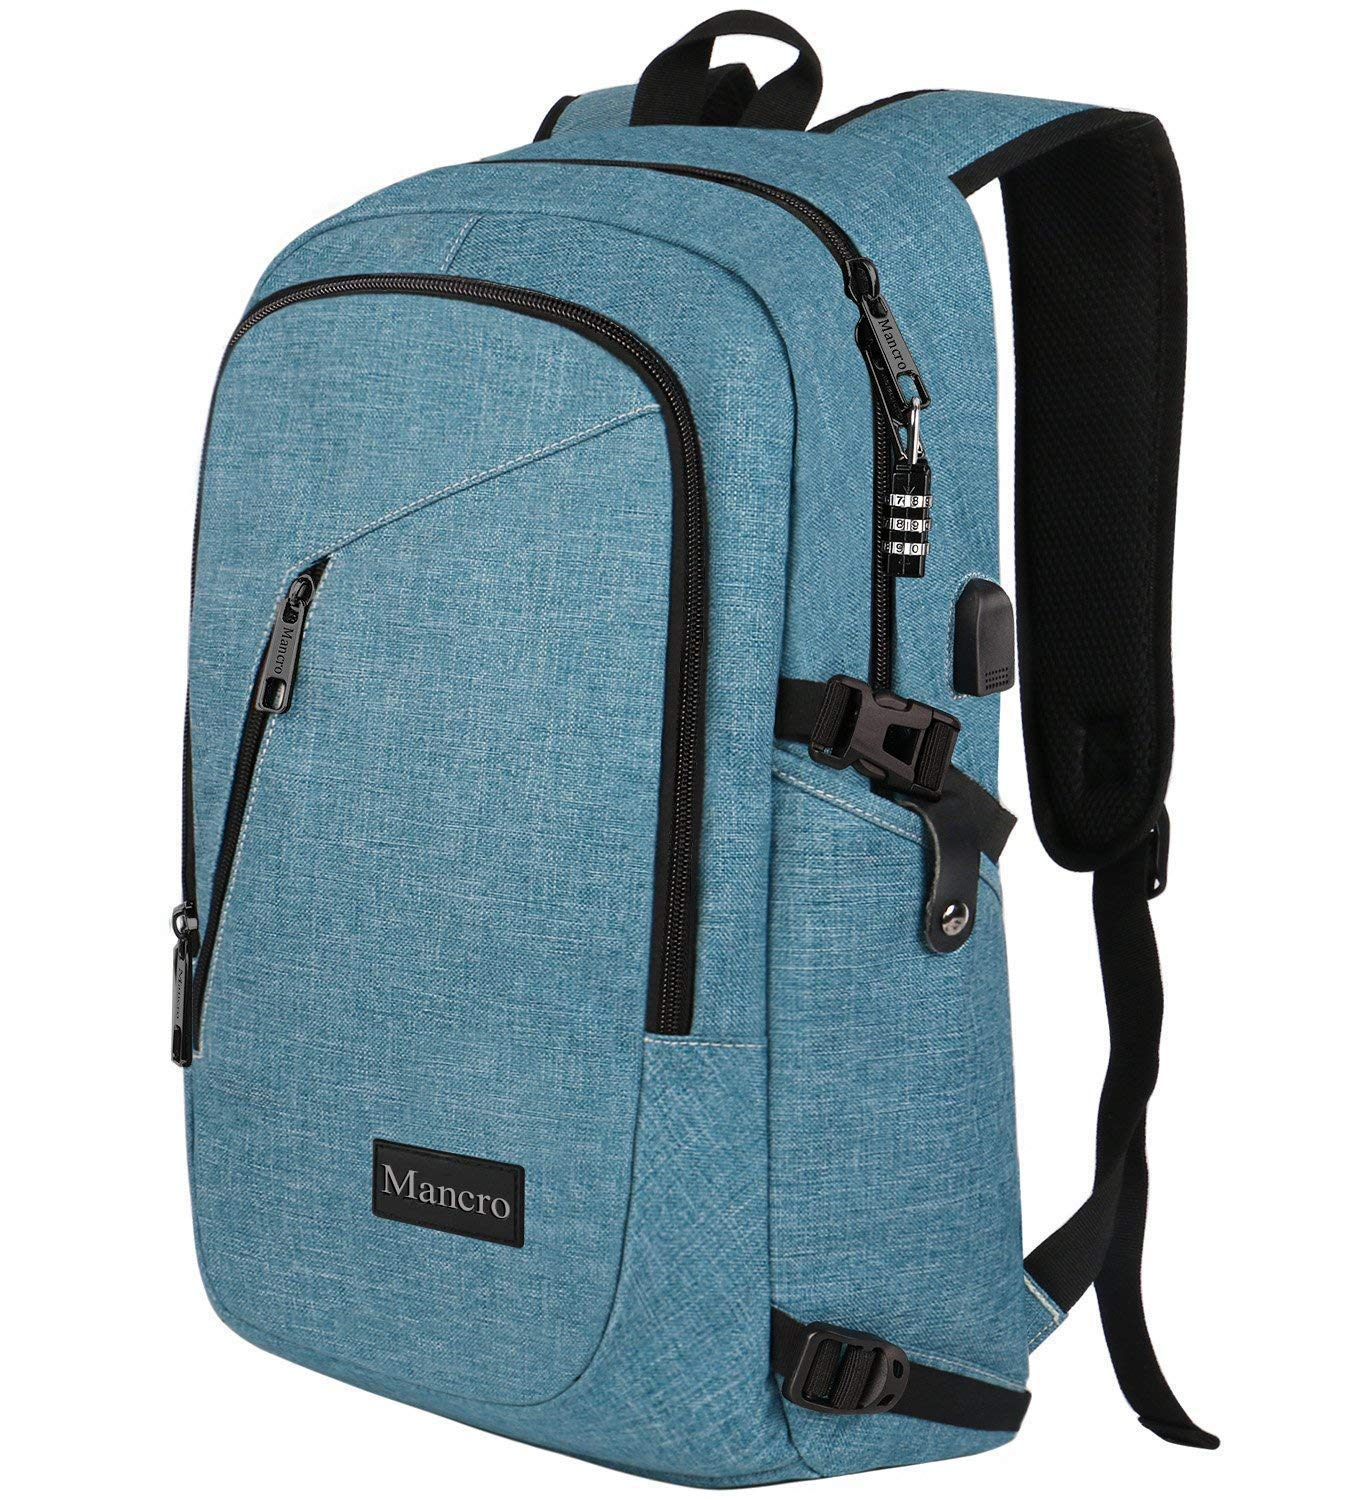 School Backpack for Women, Anti Theft College Student Backpack with USB Port, Slim Lightweight Laptop Backpack, Water Resistant Sturdy Carry On Rucksack for Work Campus Fit 15.6'' Computer (Crest Blue) by Mancro